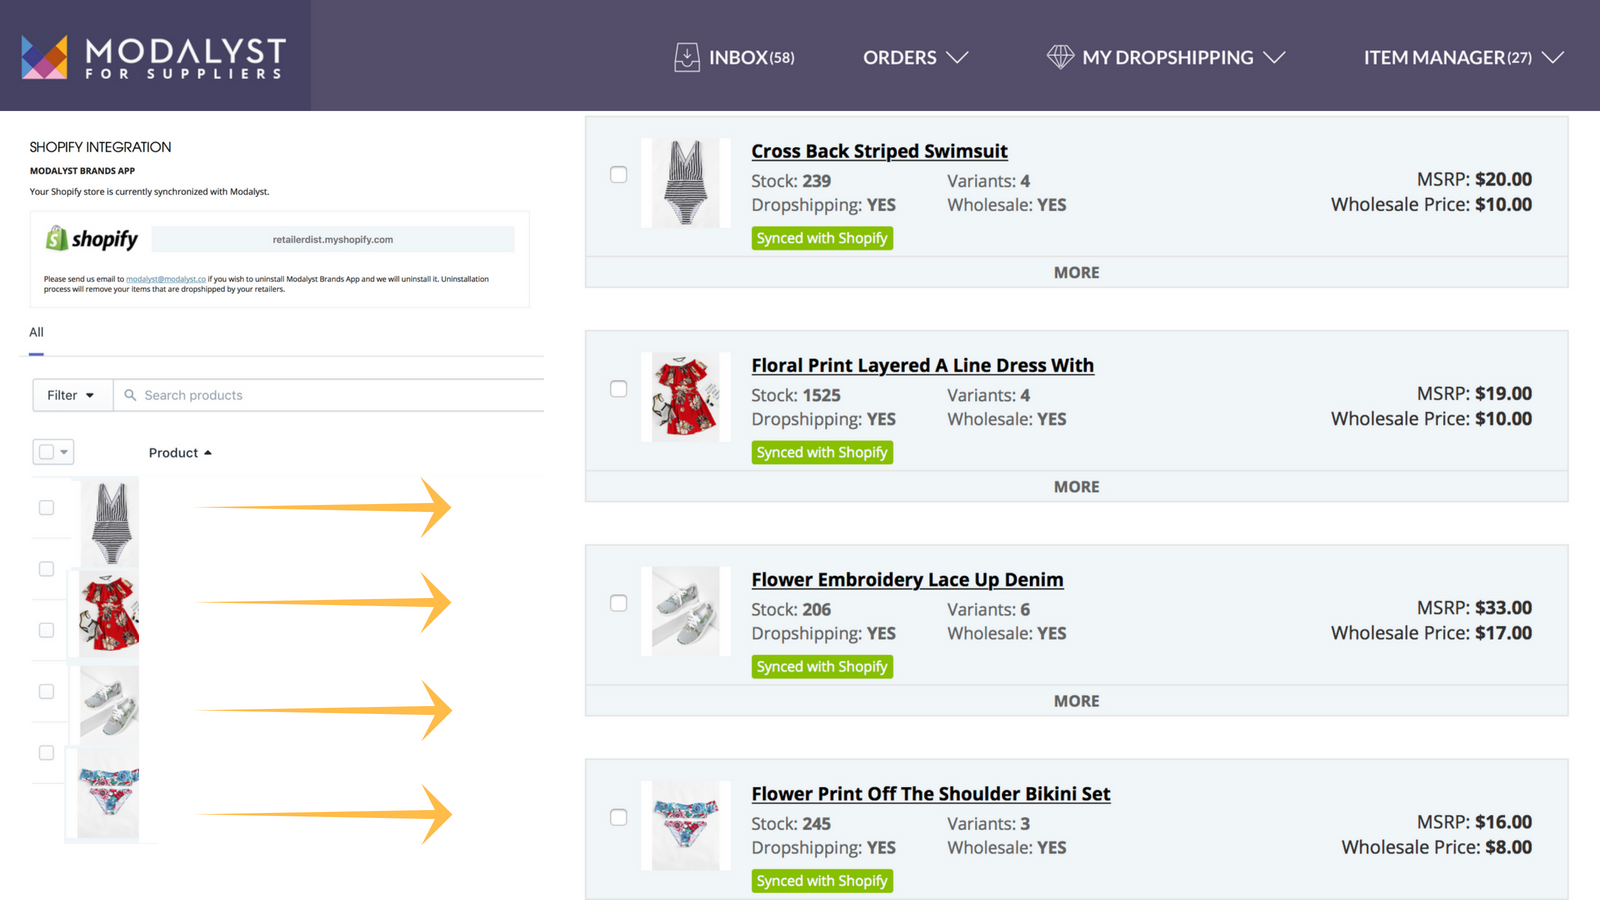 Product details, inventory and orders are synced with Shopify